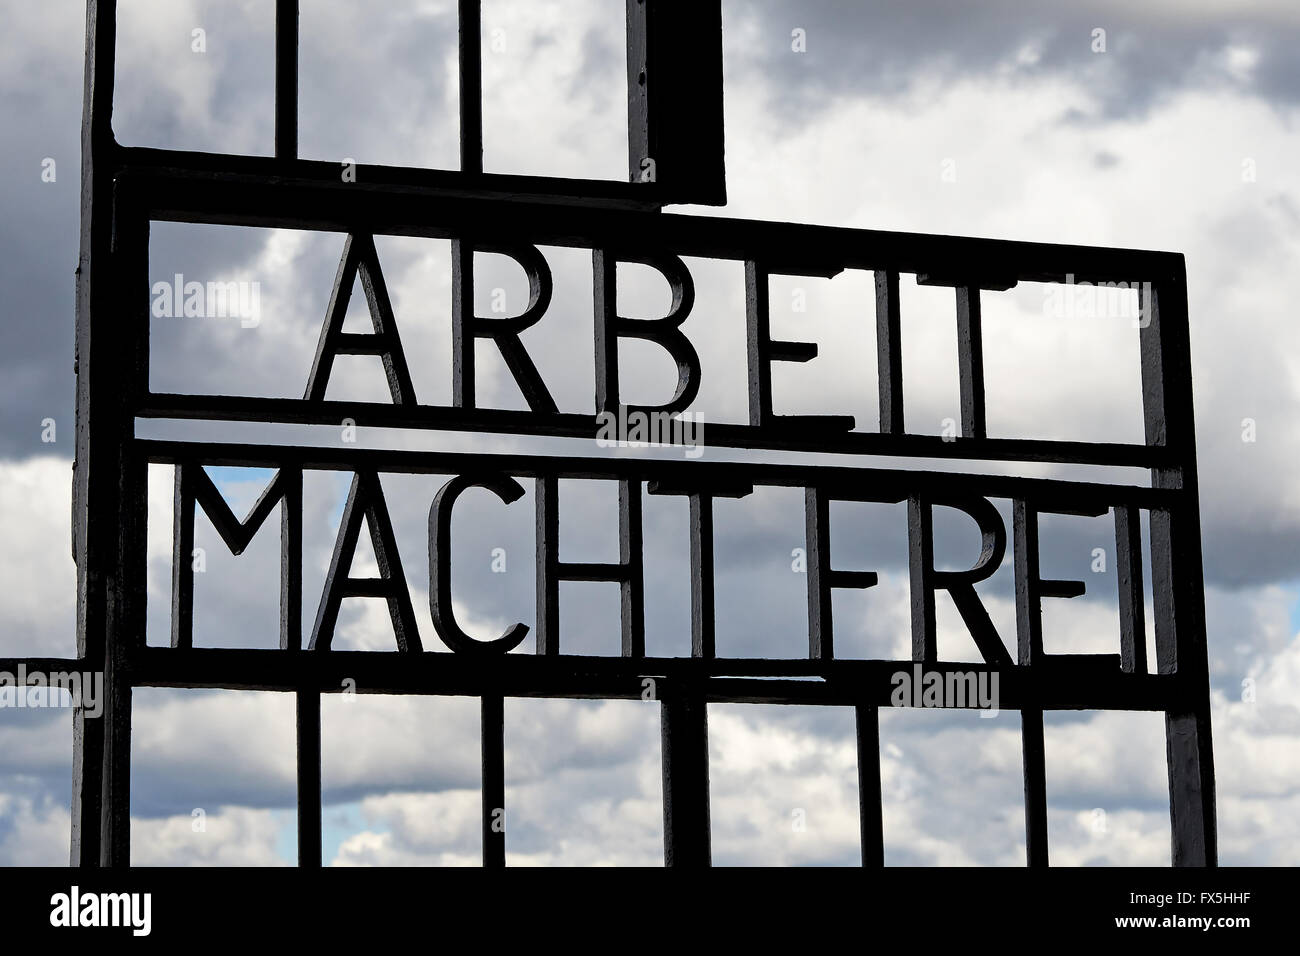 Arbeit Macht Frei gate at sachsenhausen concentration camp - Stock Image